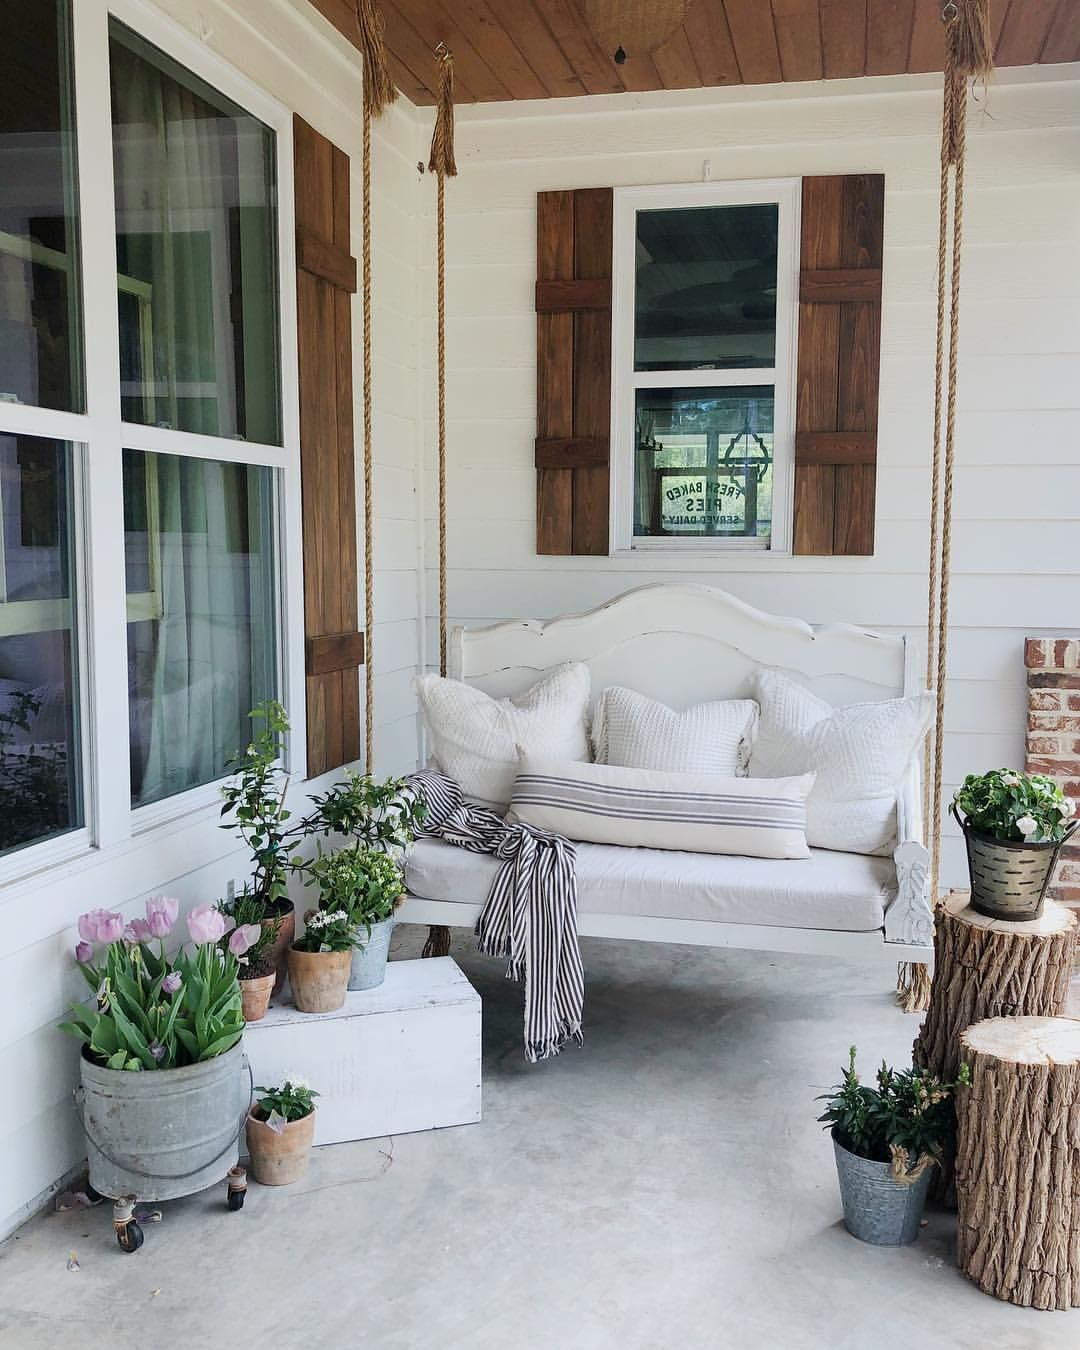 14 Awesome DIY Rustic Porch Designs  #rusticporchideas